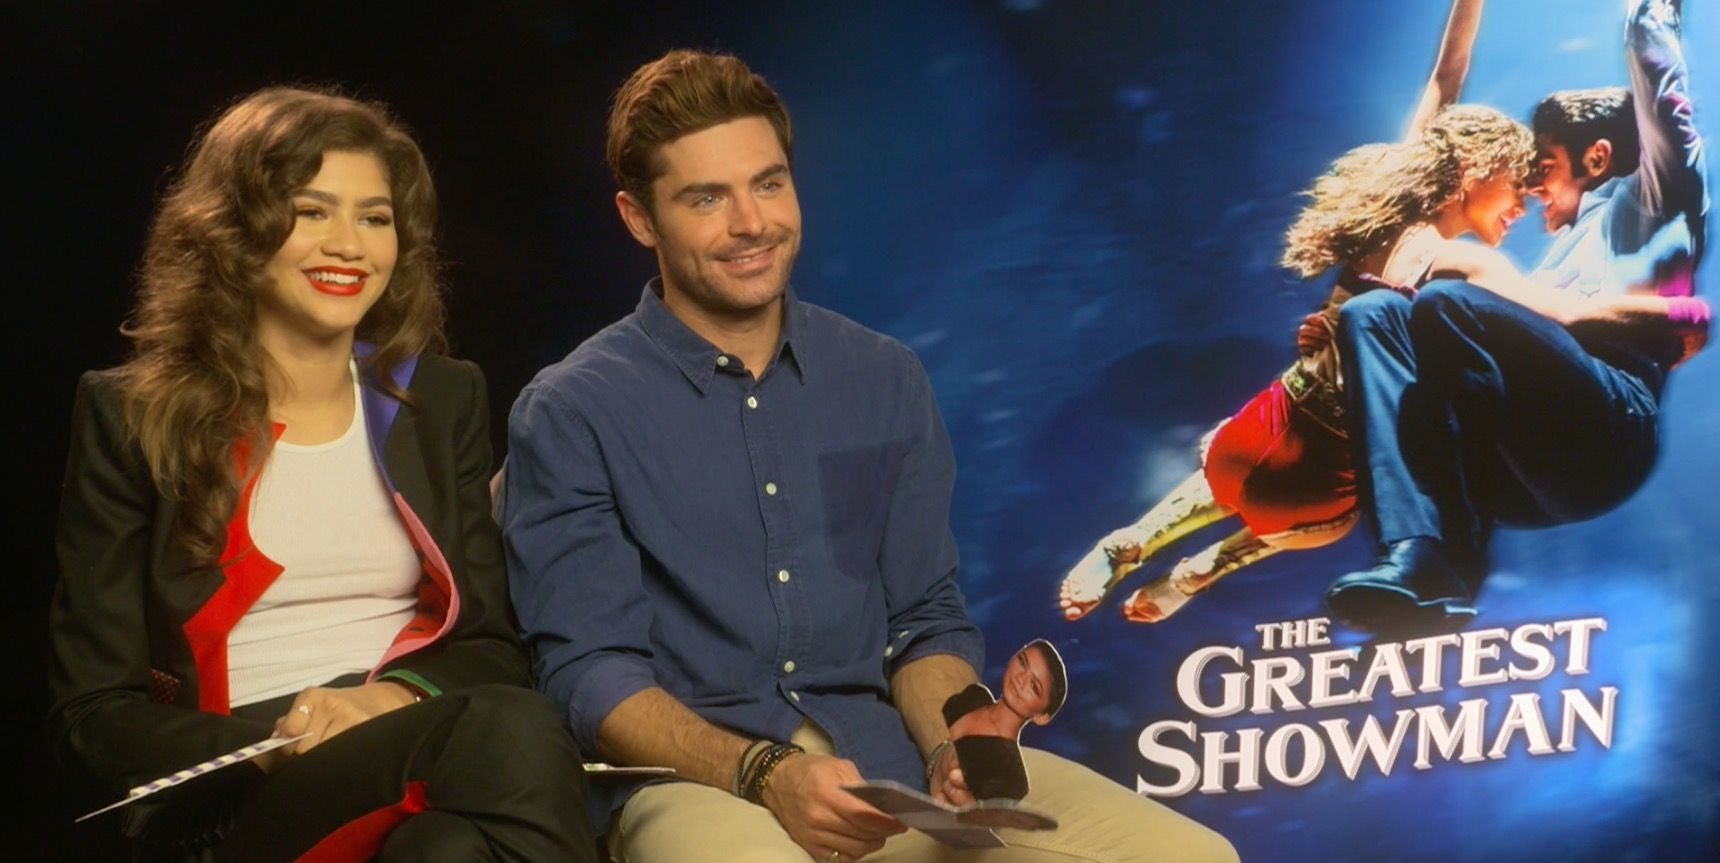 Watch Zac Efron and Zendaya doing the robot